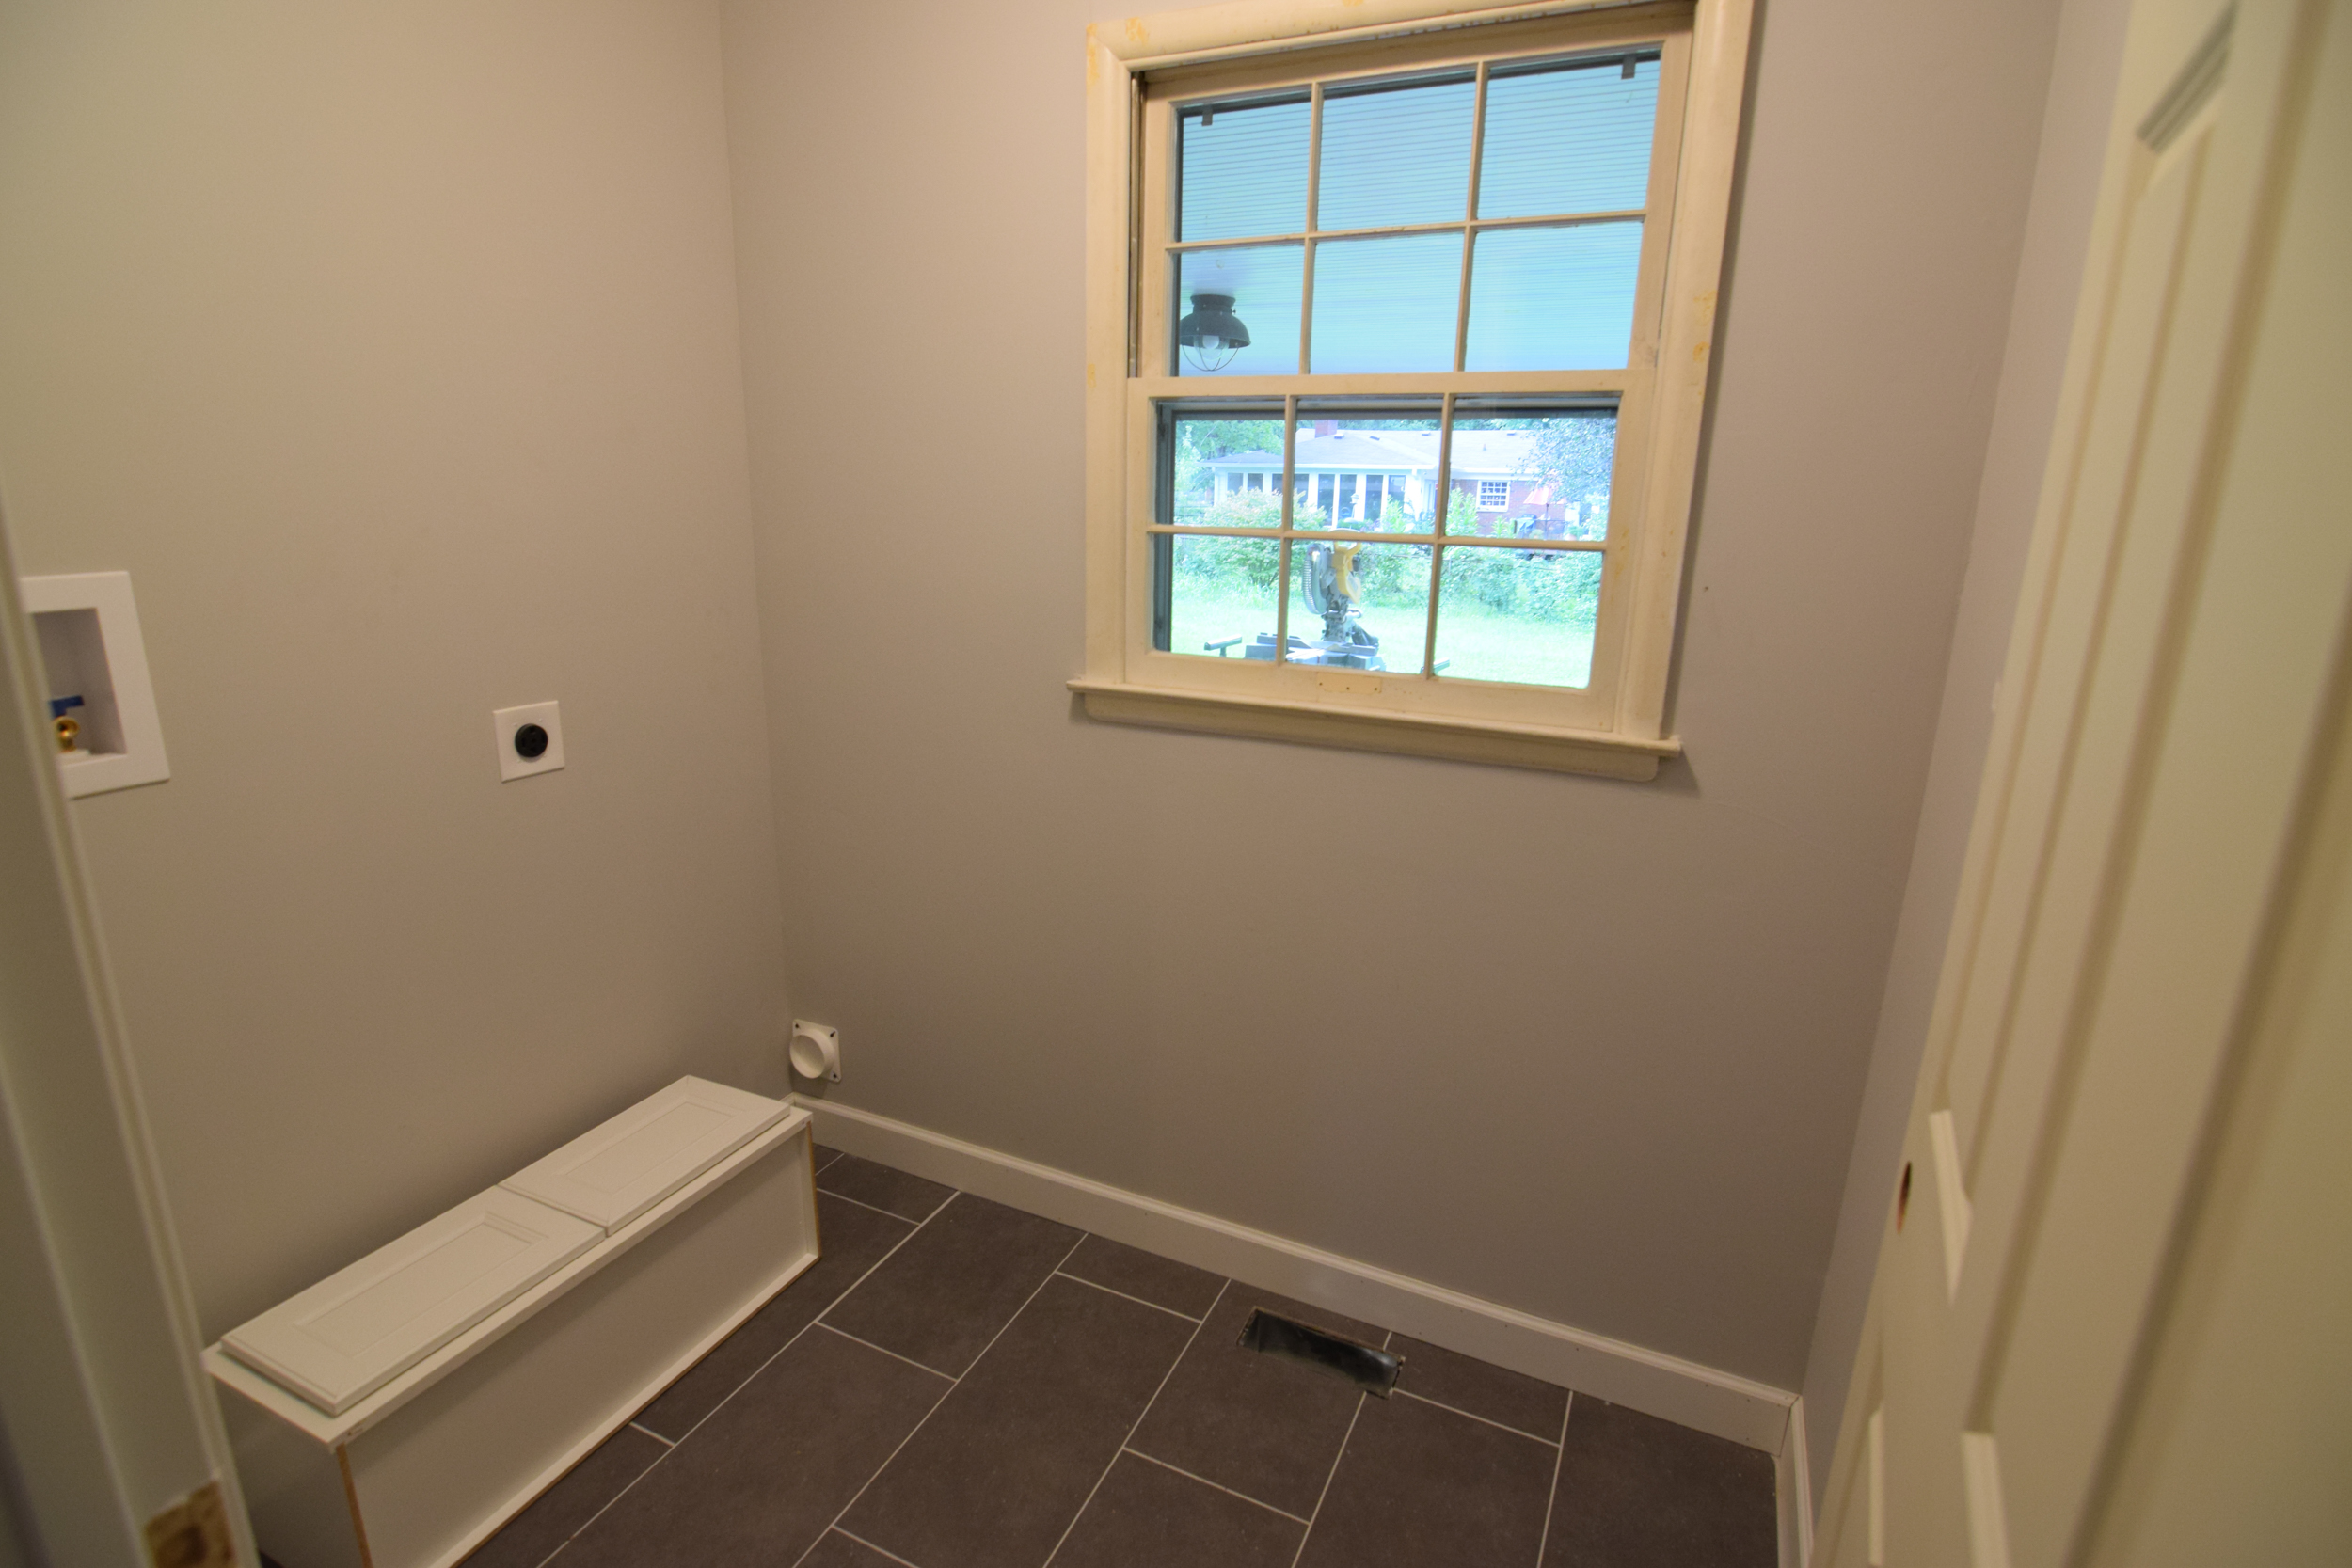 Laundry Room and Half Bathroom